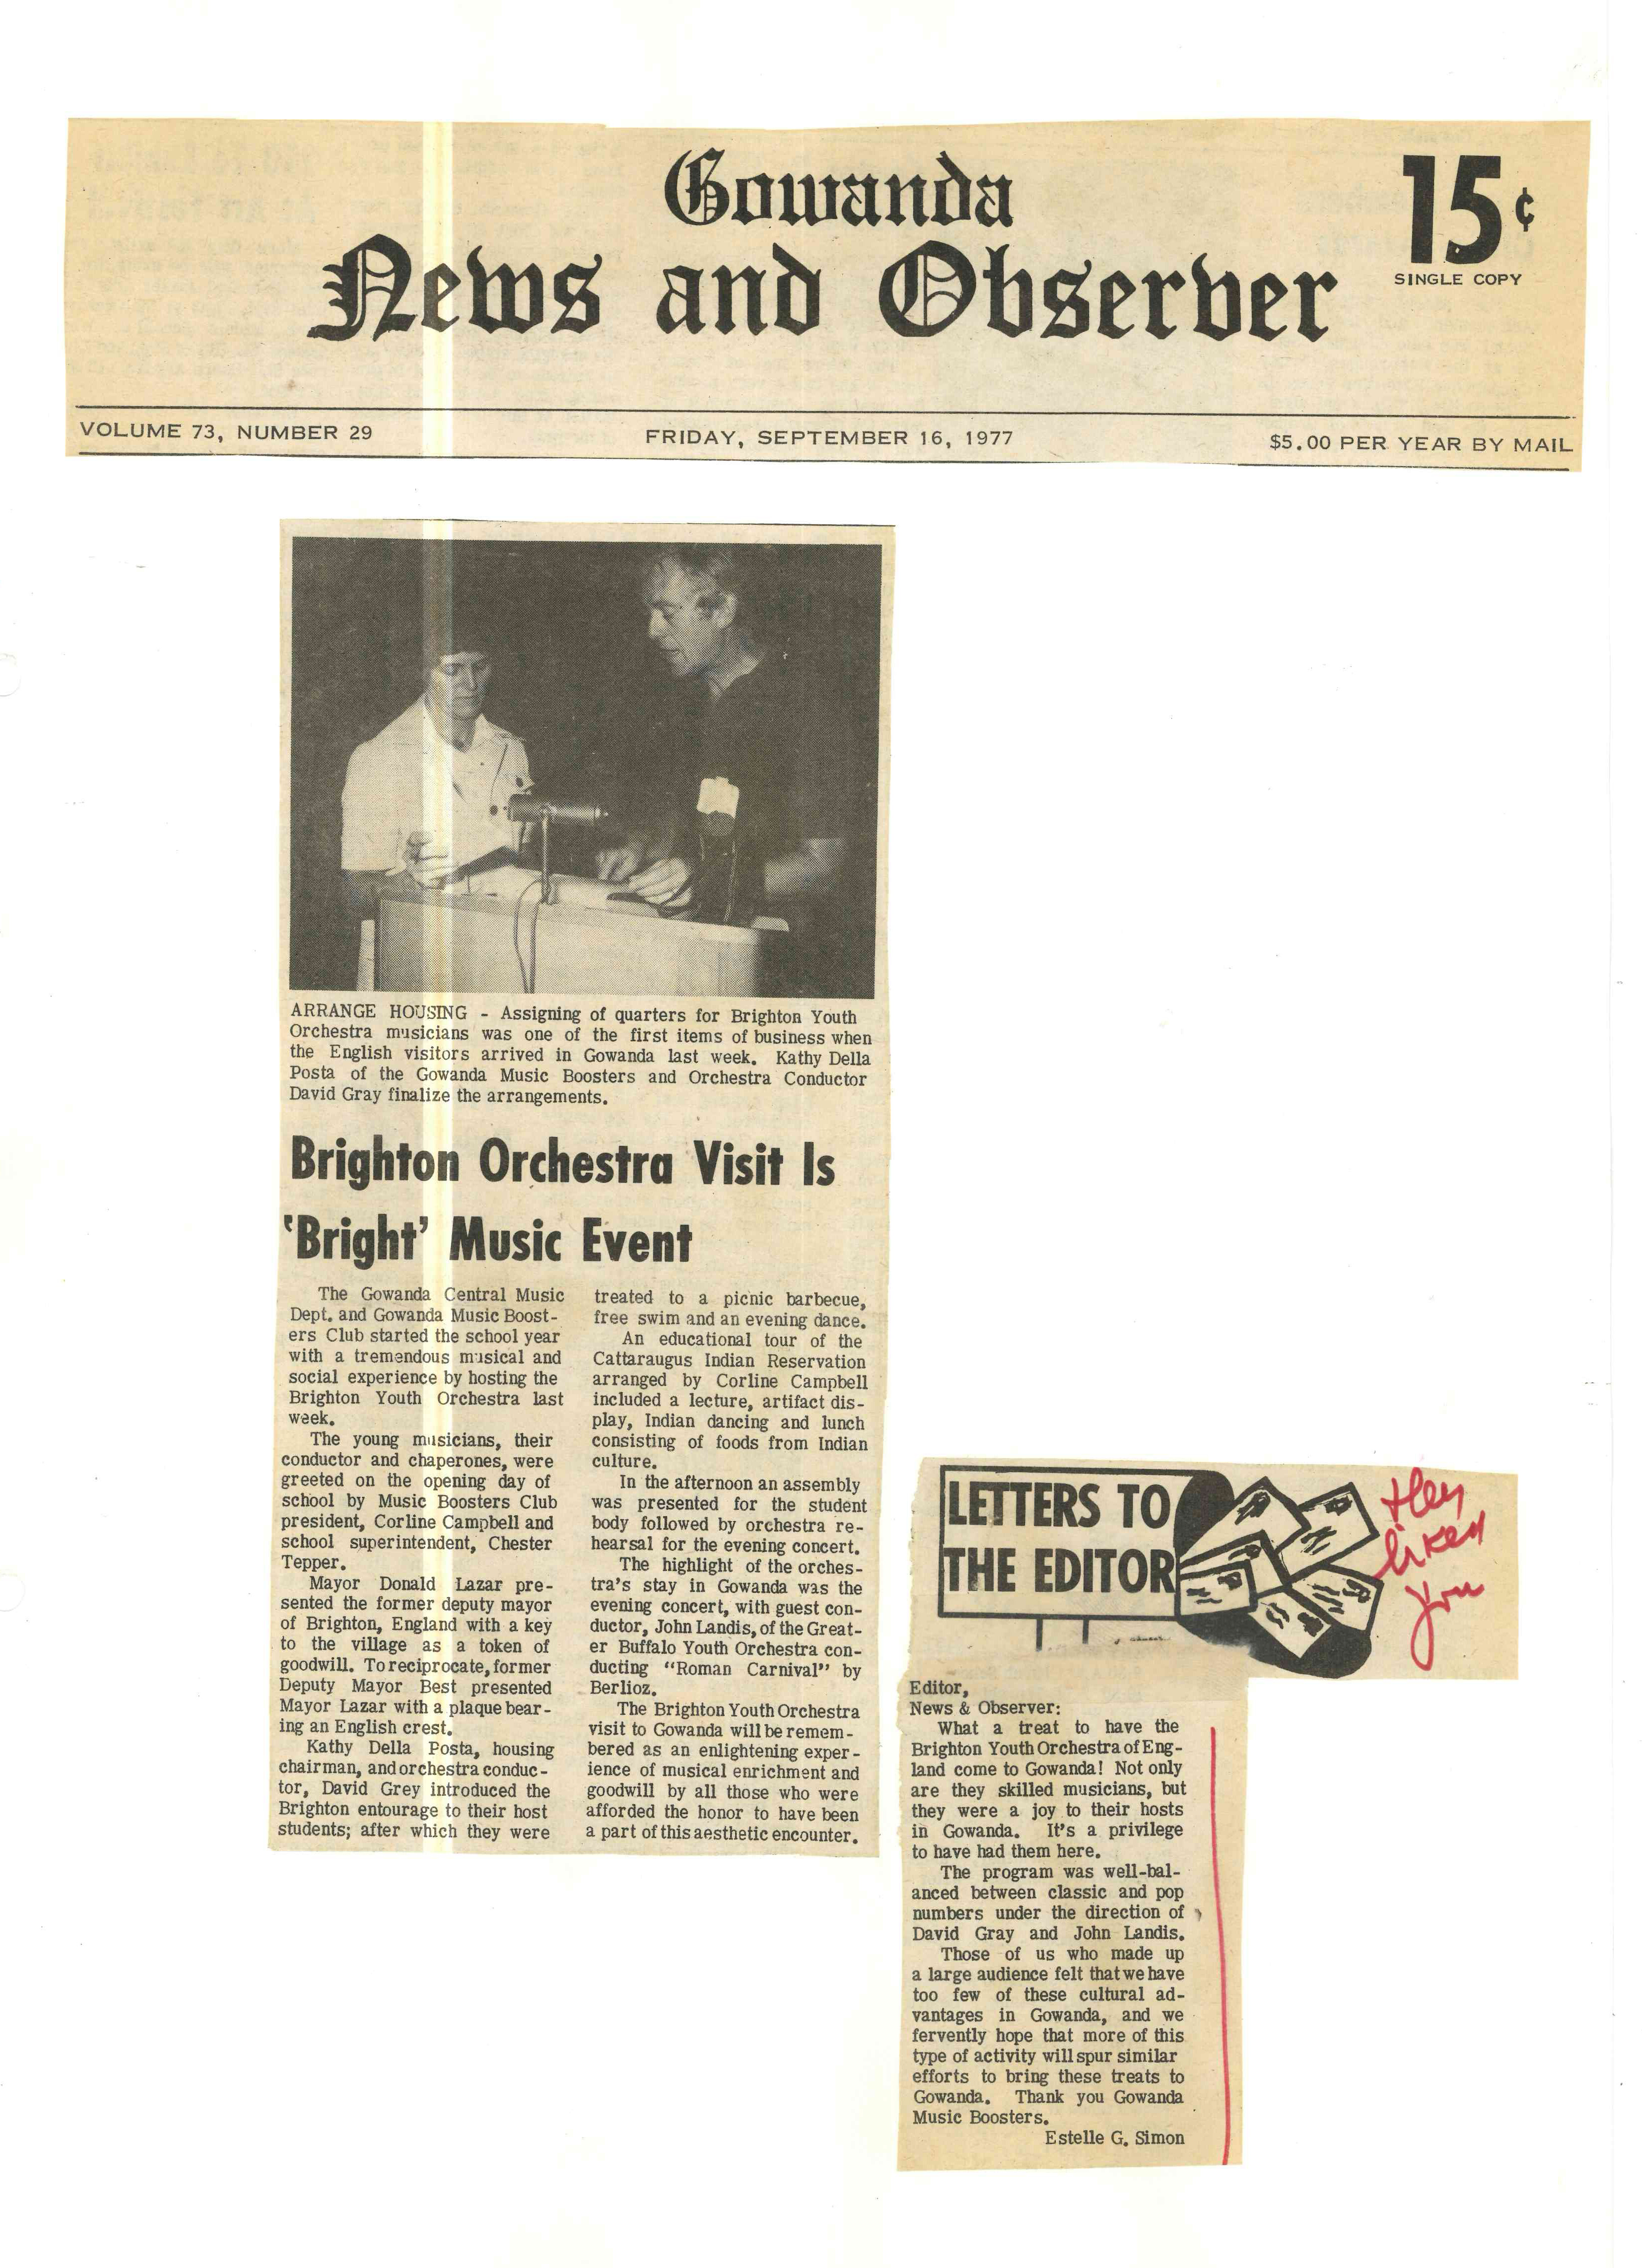 00058-Gowanda News and Observer, 16th September 1977.jpg